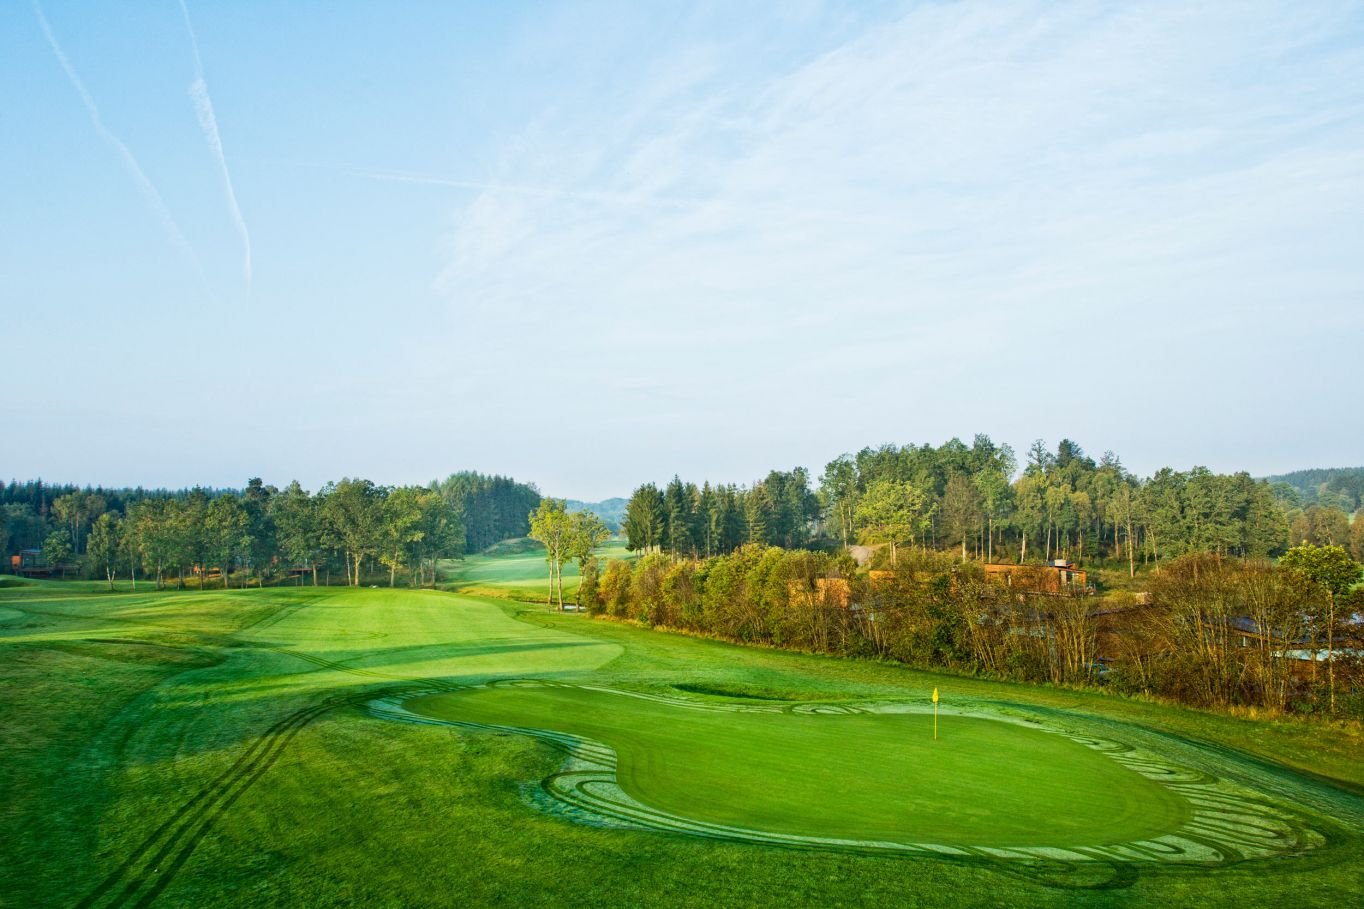 Woodlands Golfklubb - 18 hål